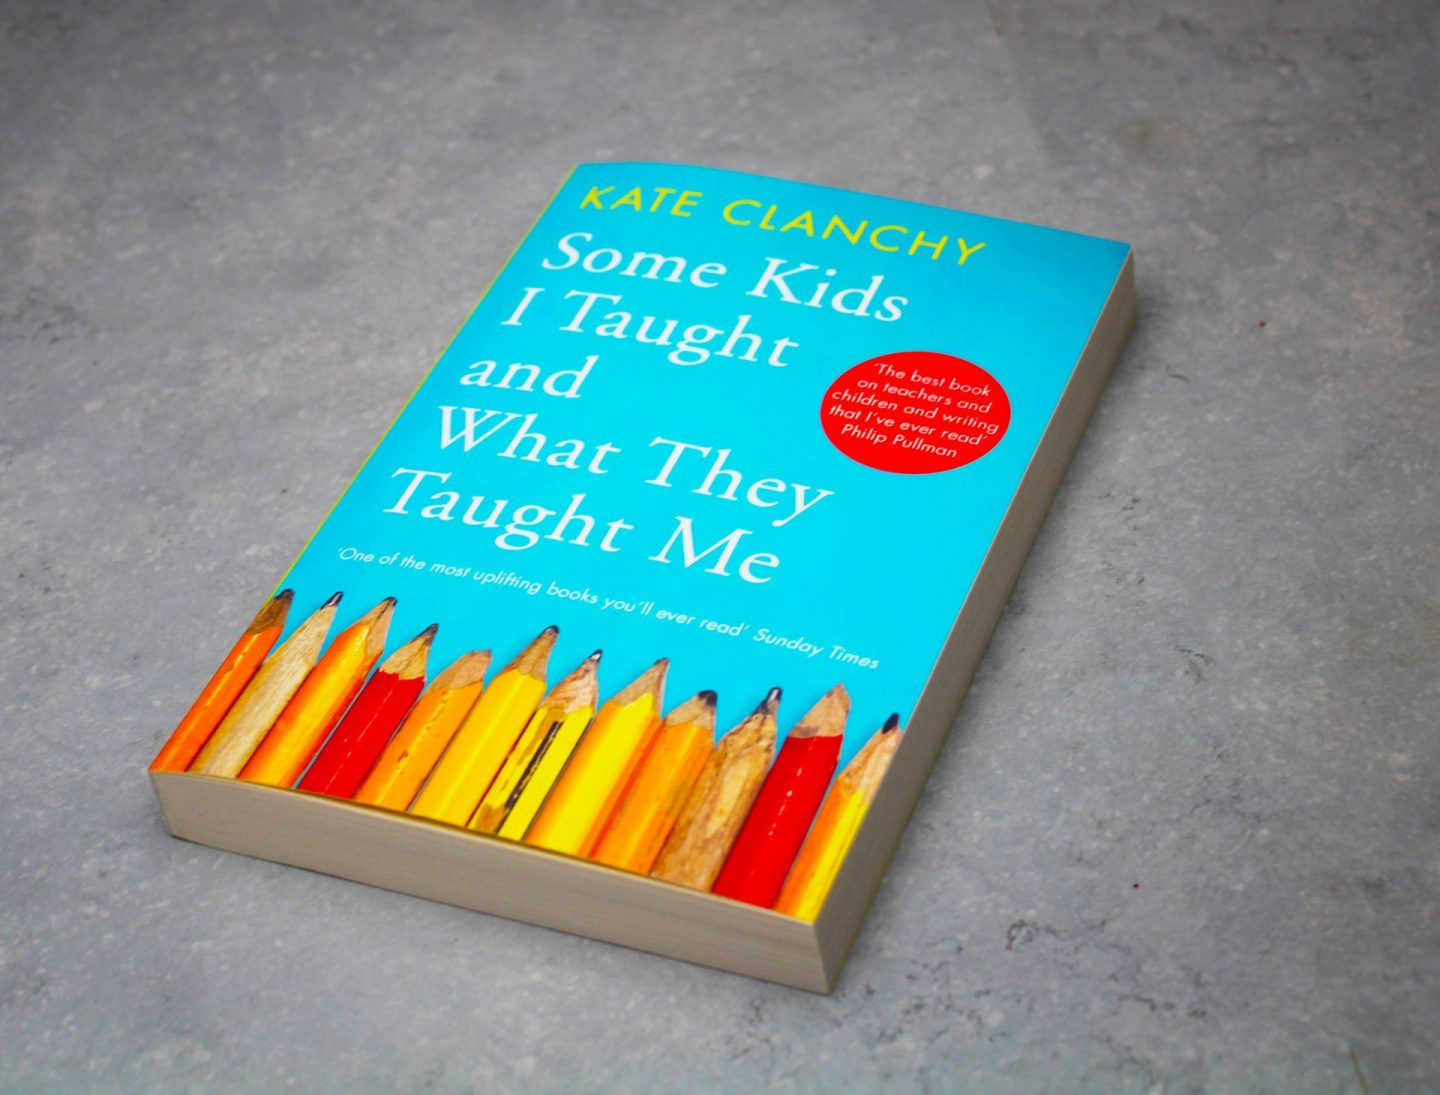 Picture of Kate Clanchy book Some Kids I taught and What They Taught Me